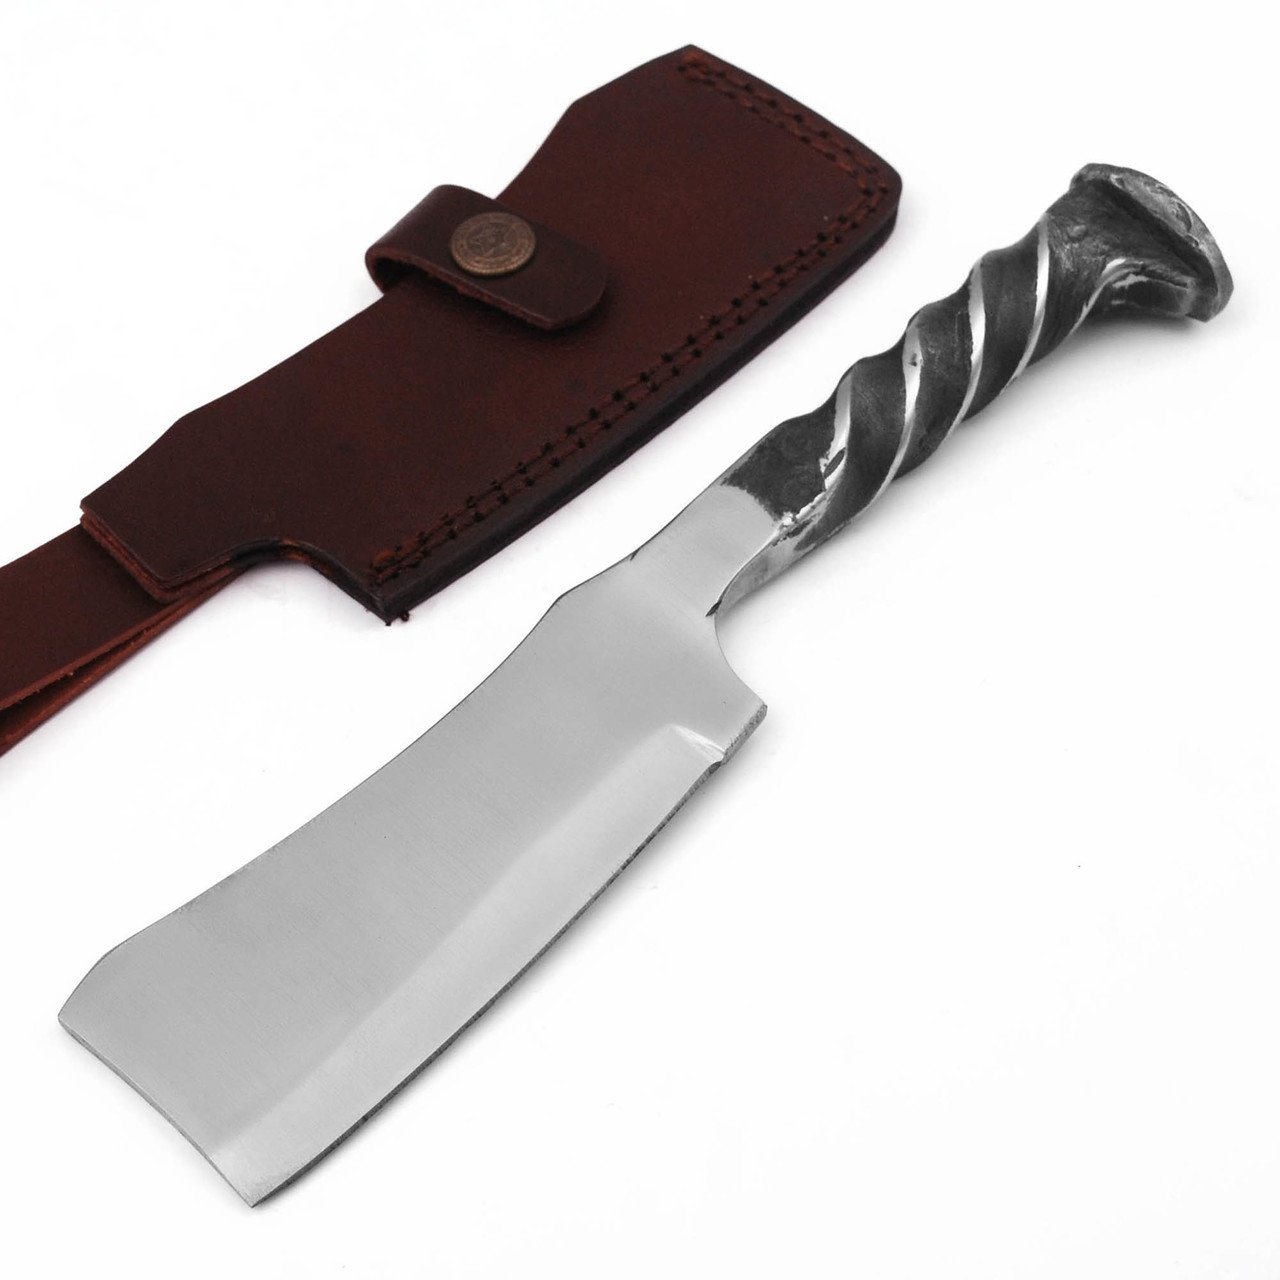 The Butcher Locomotive Railroad Spike Cleaver Knife